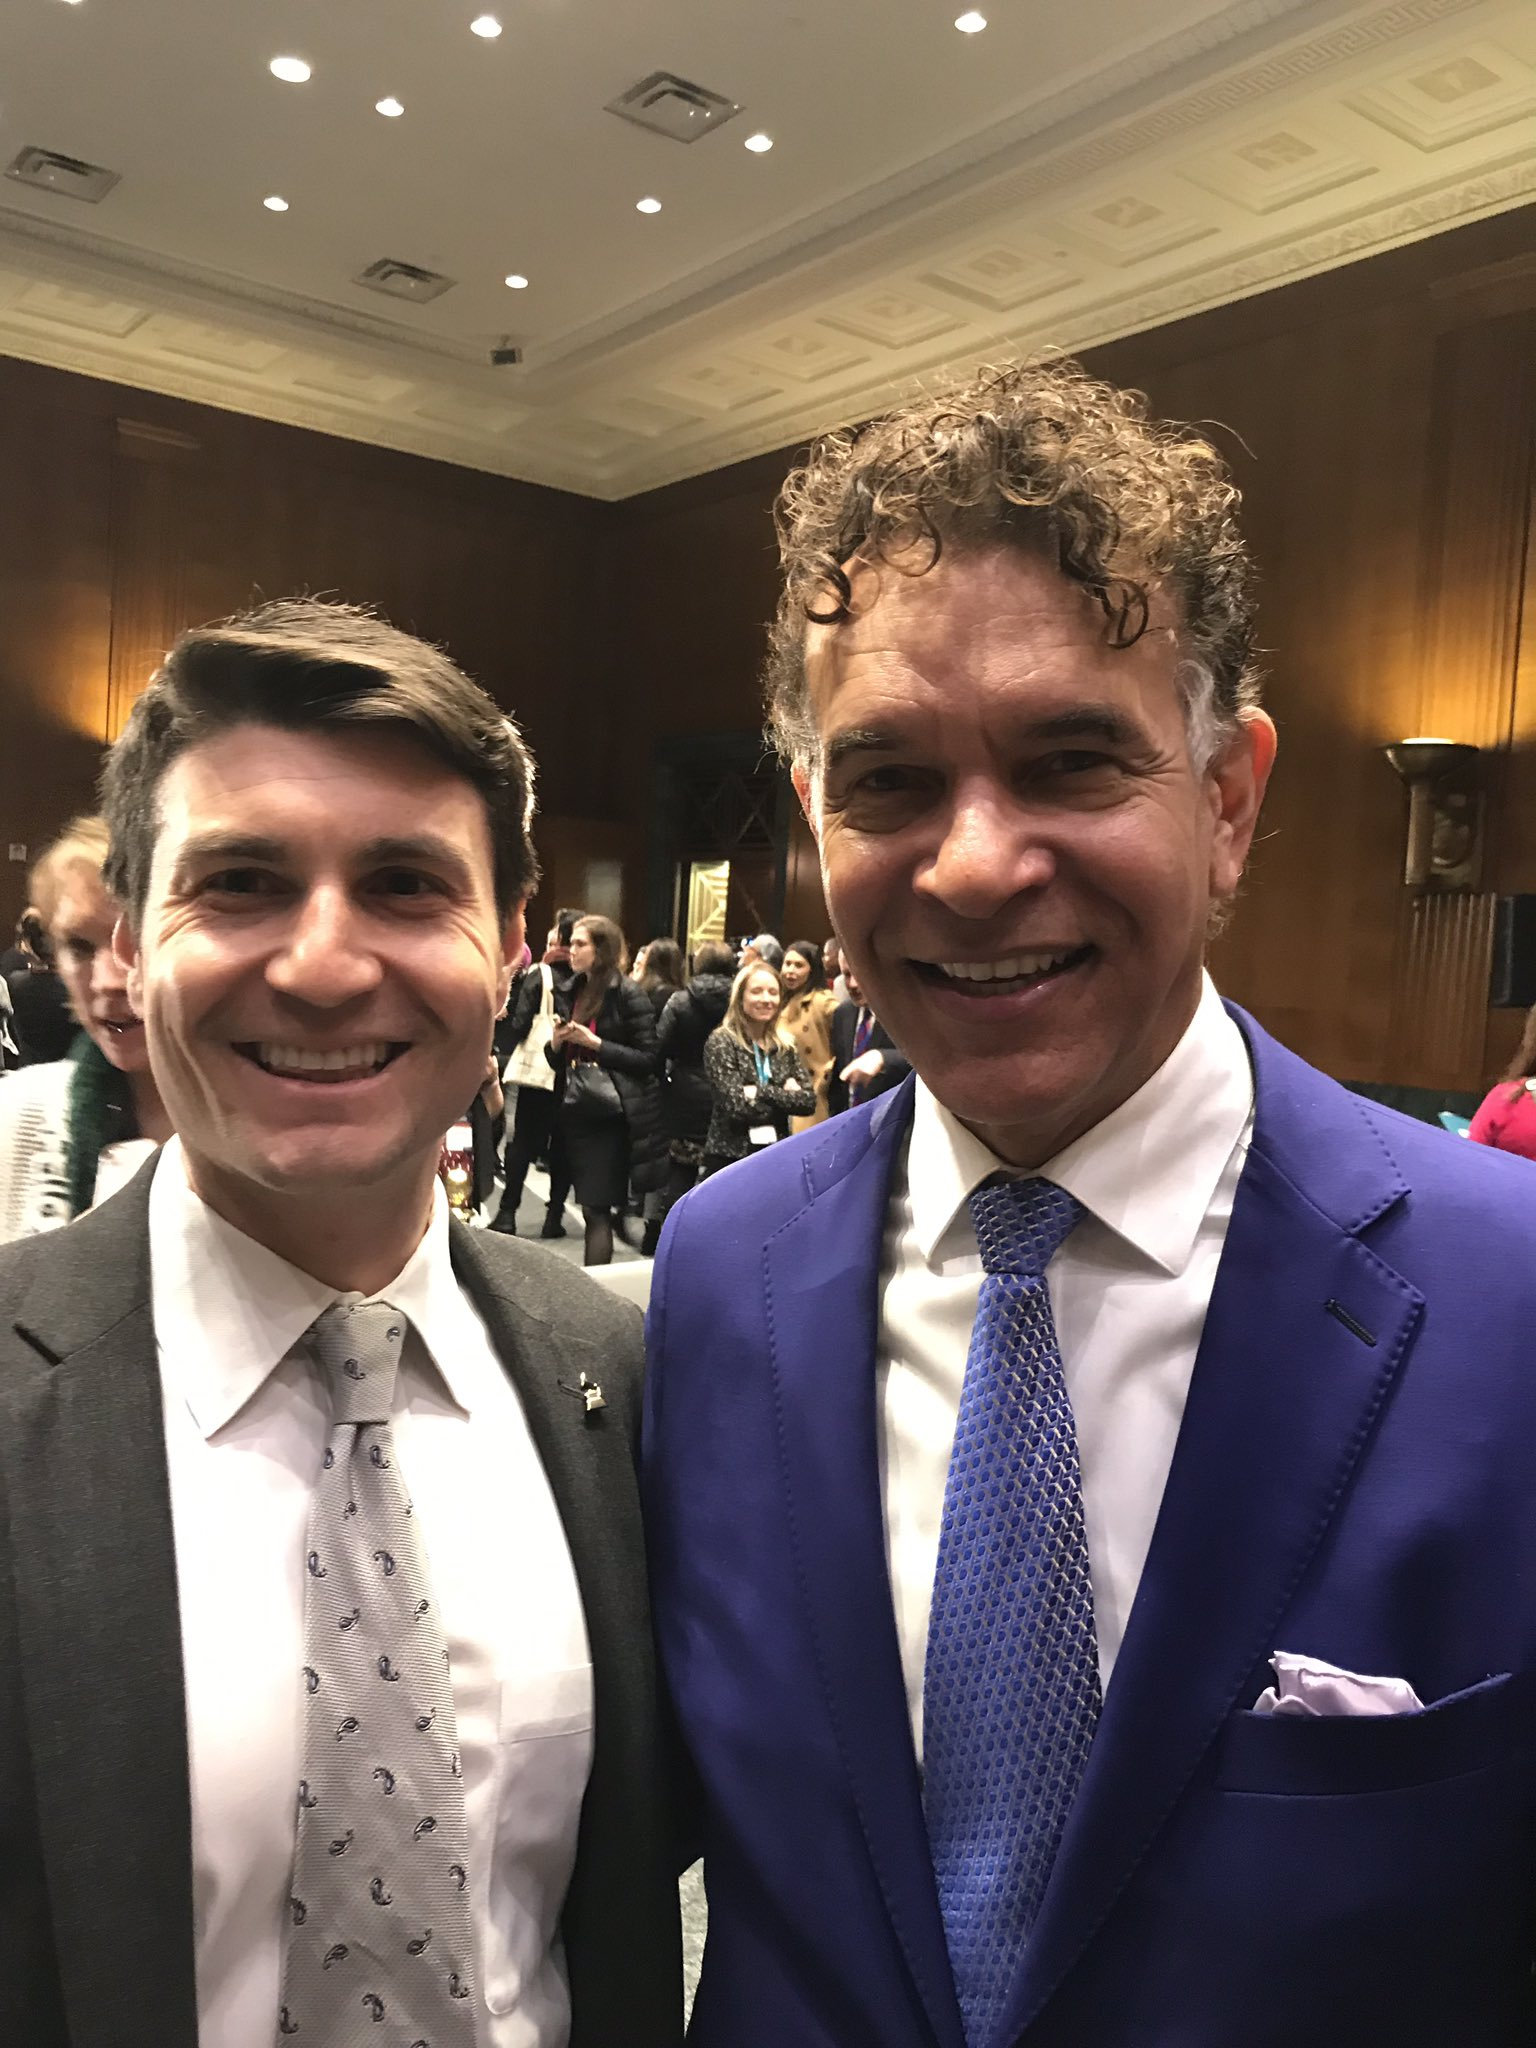 Michael Lewan and Brian Stokes Mitchell